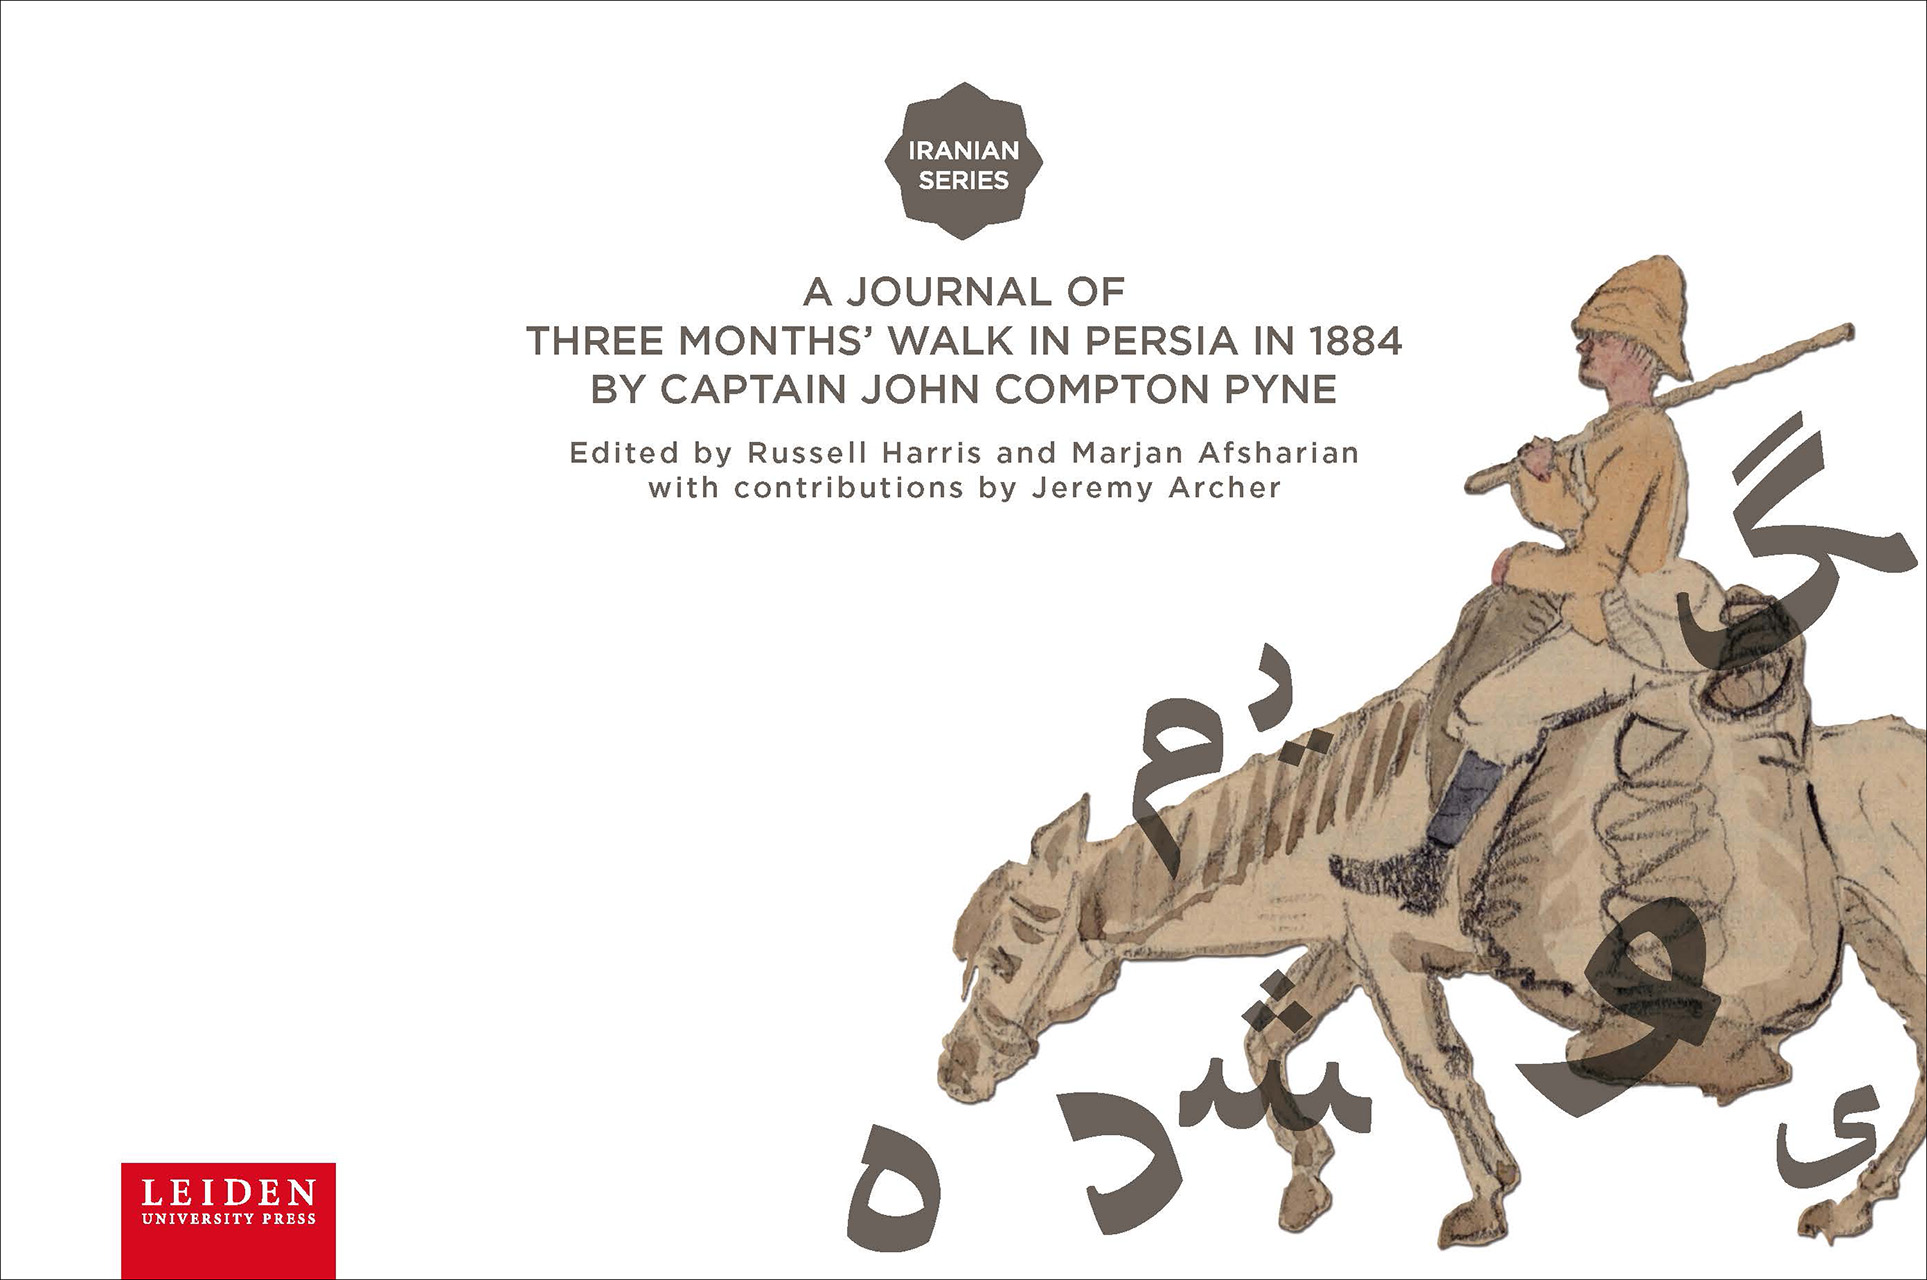 A Journal of Three Months' Walk in Persia in 1884 by Captain John Compton Pyne